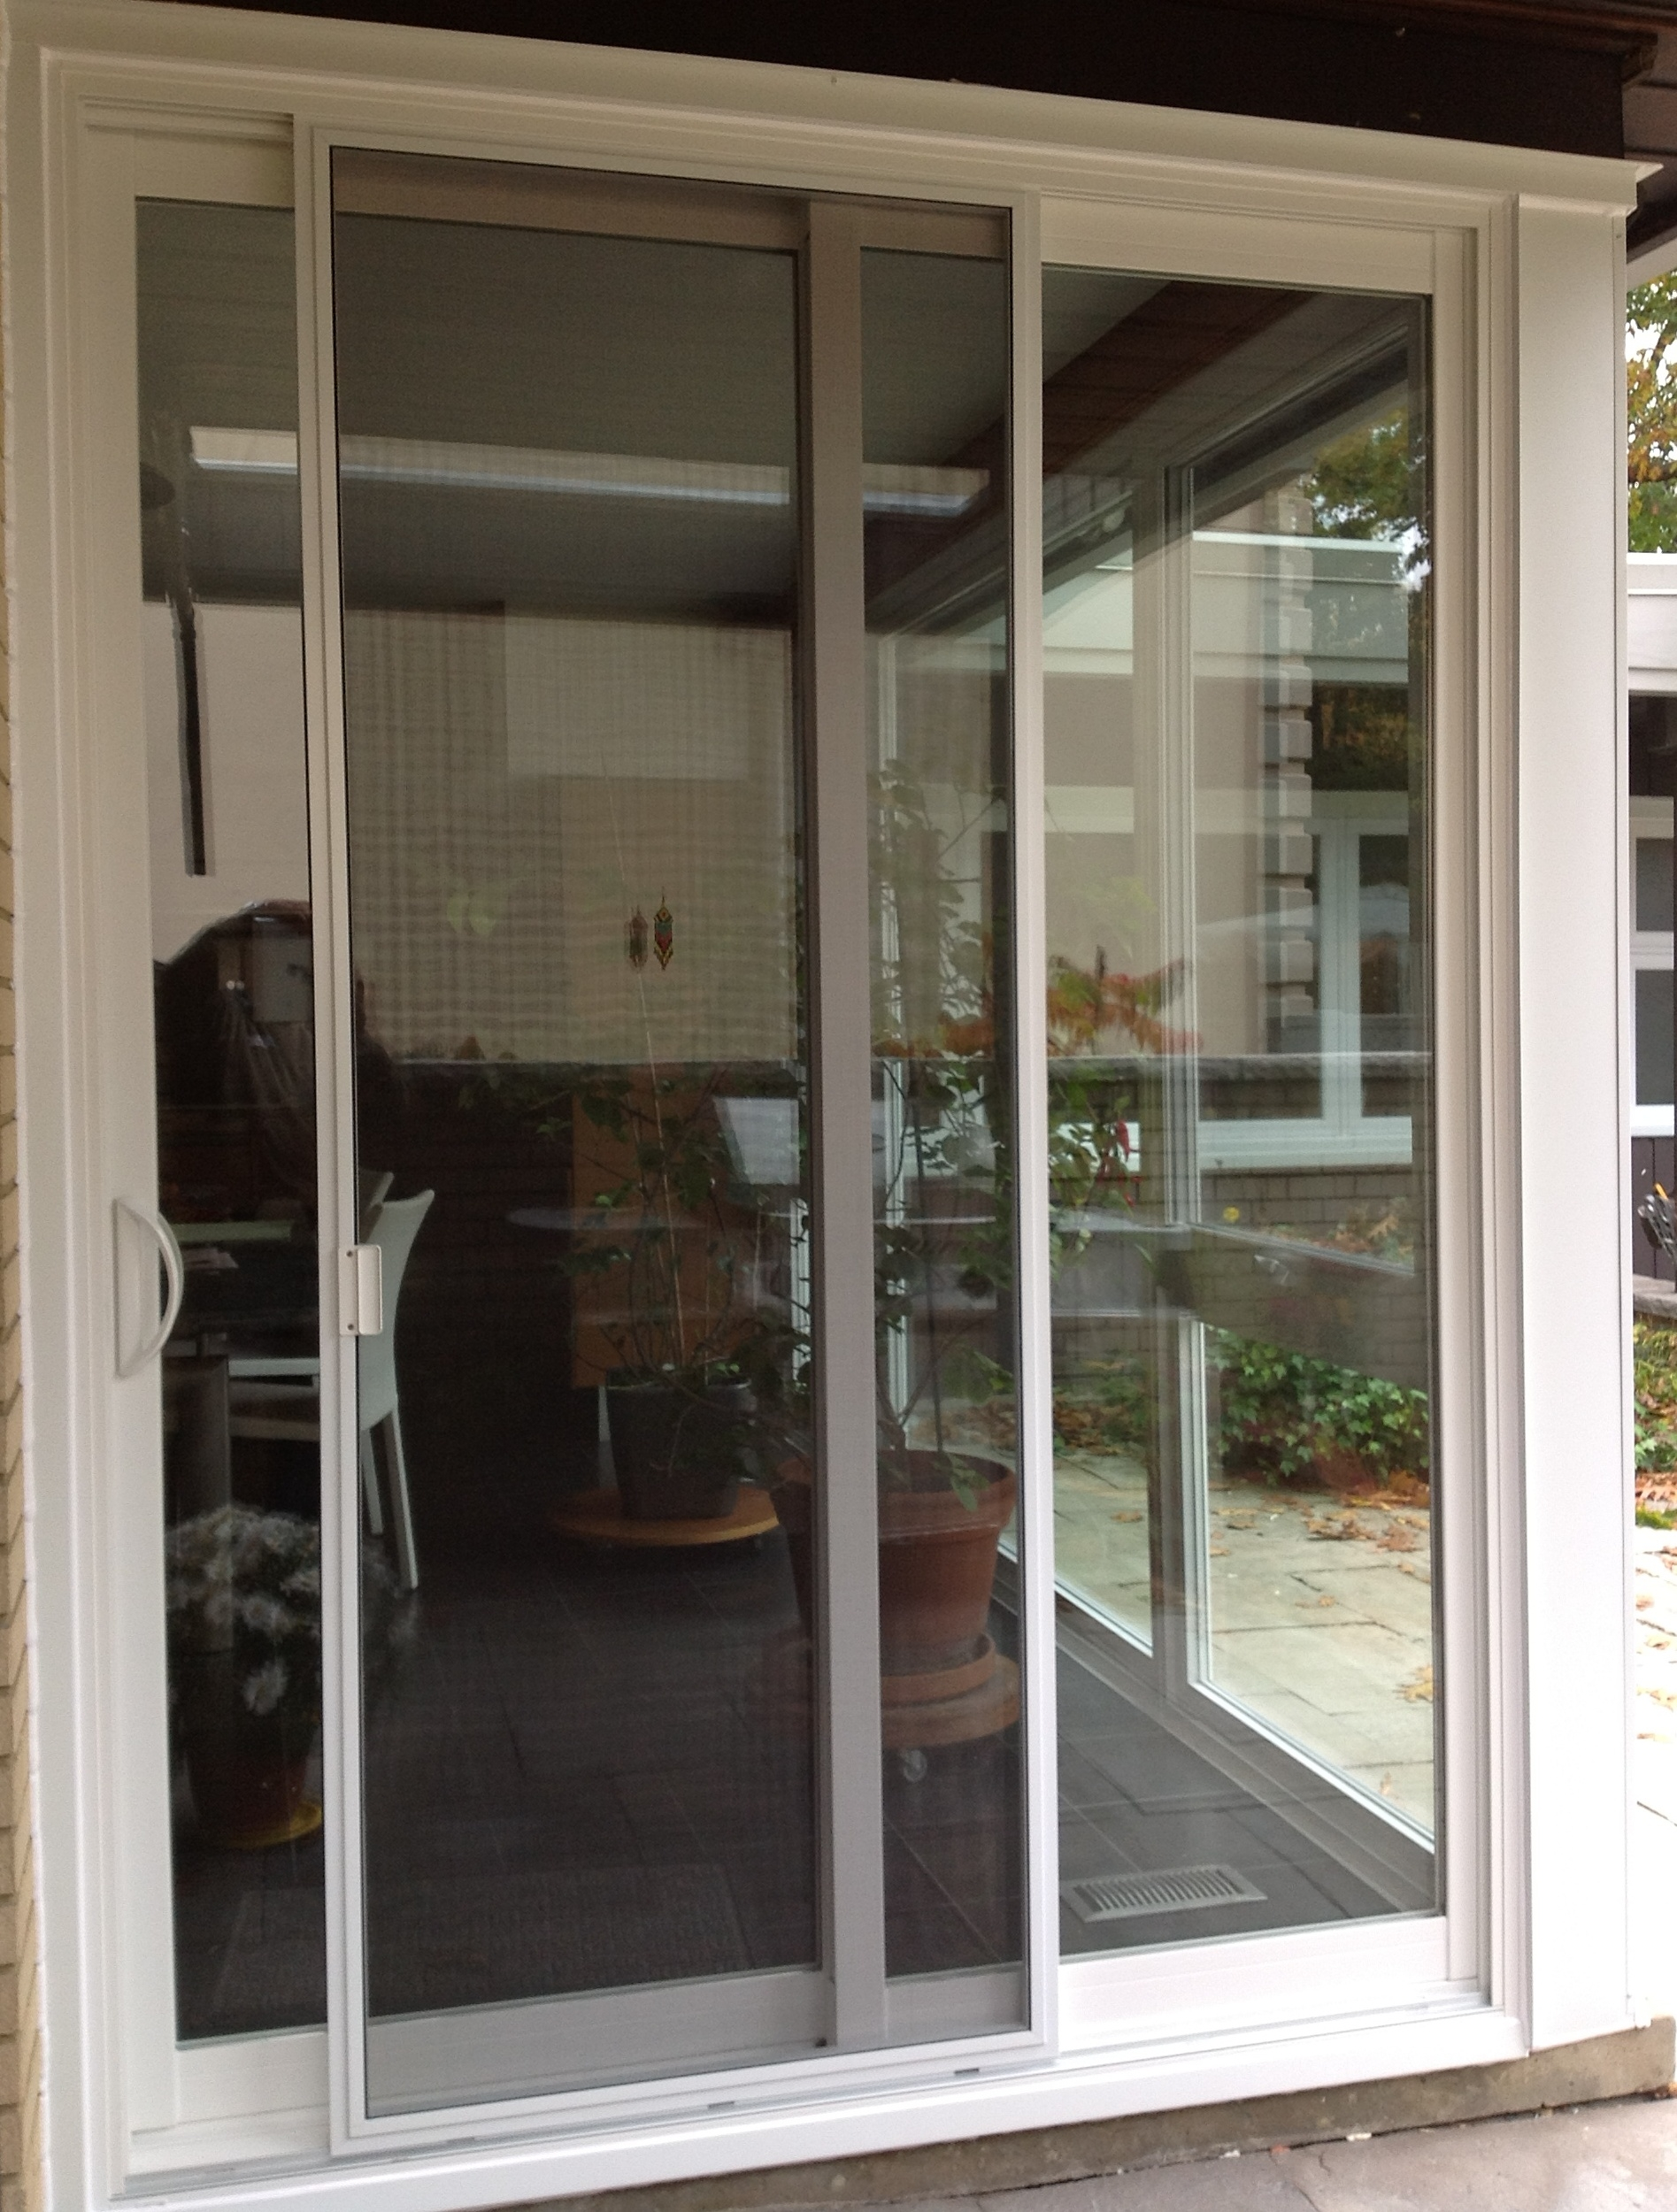 Sliding Screen Door For Apartment Balcony